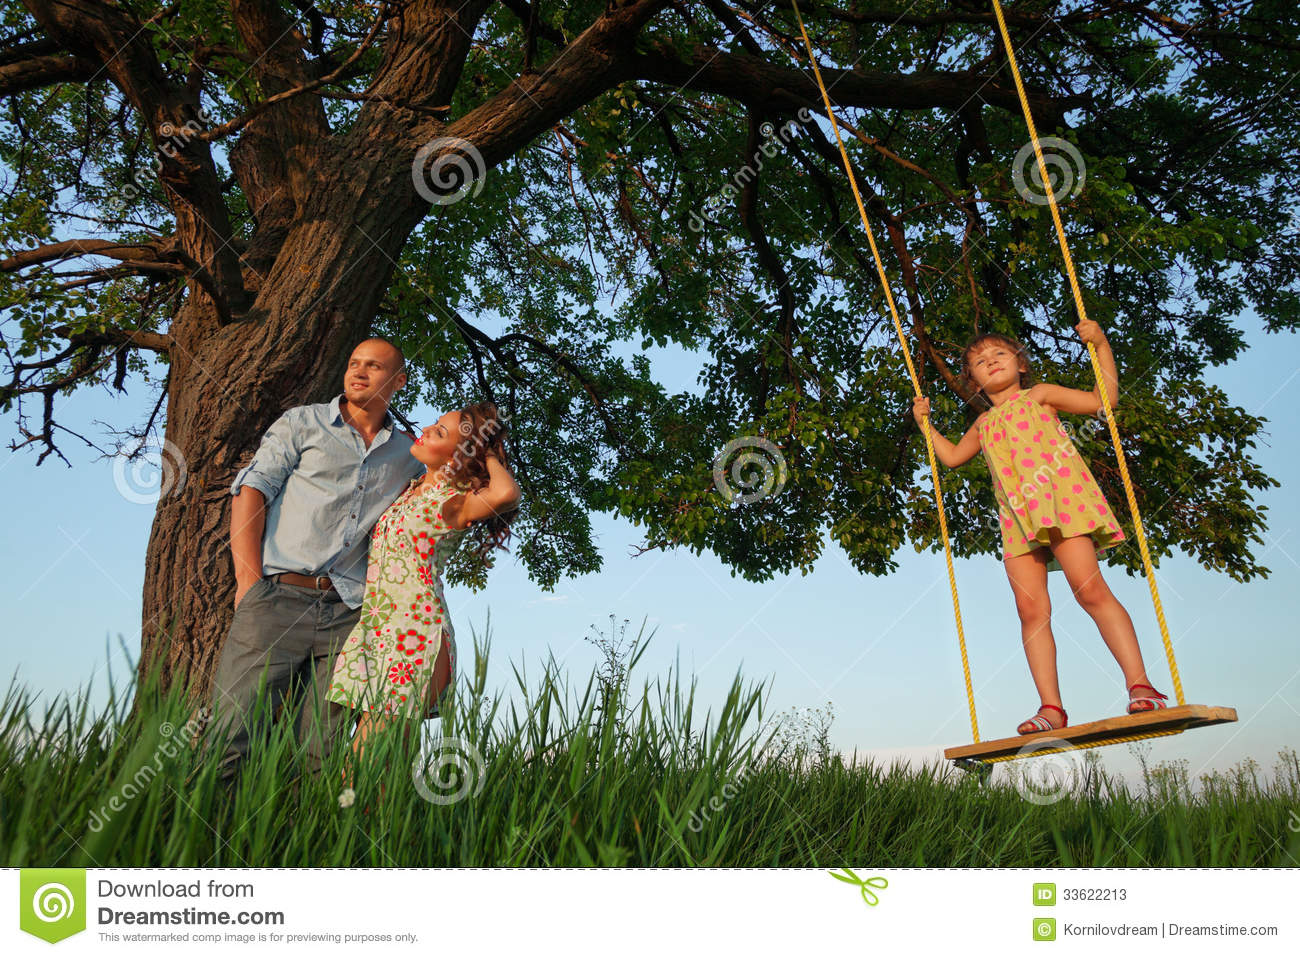 Girl On The Swing Stock Photos - Image: 33622213